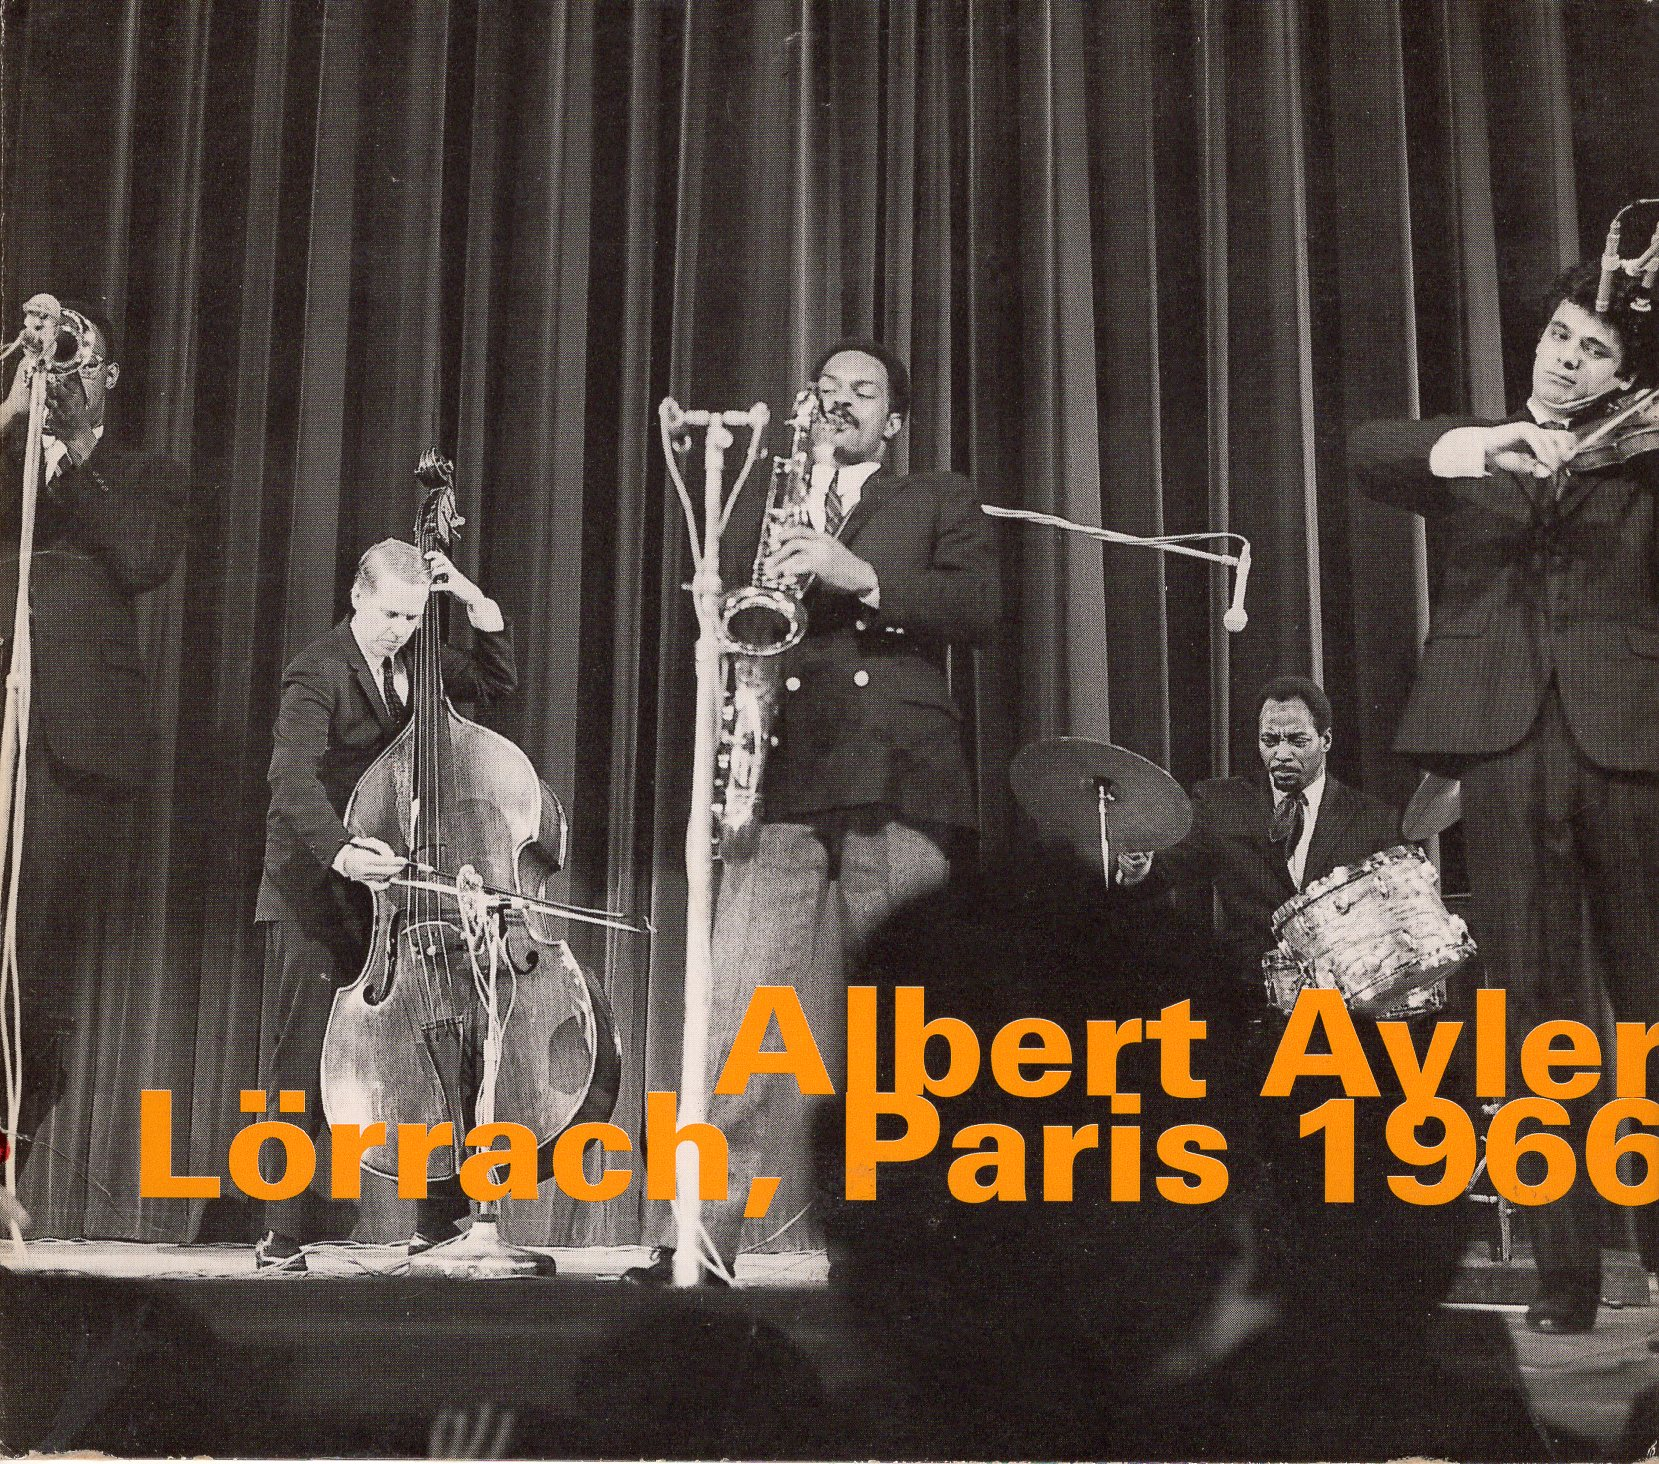 """Loerrach, Paris 1966"" Albert Ayler"